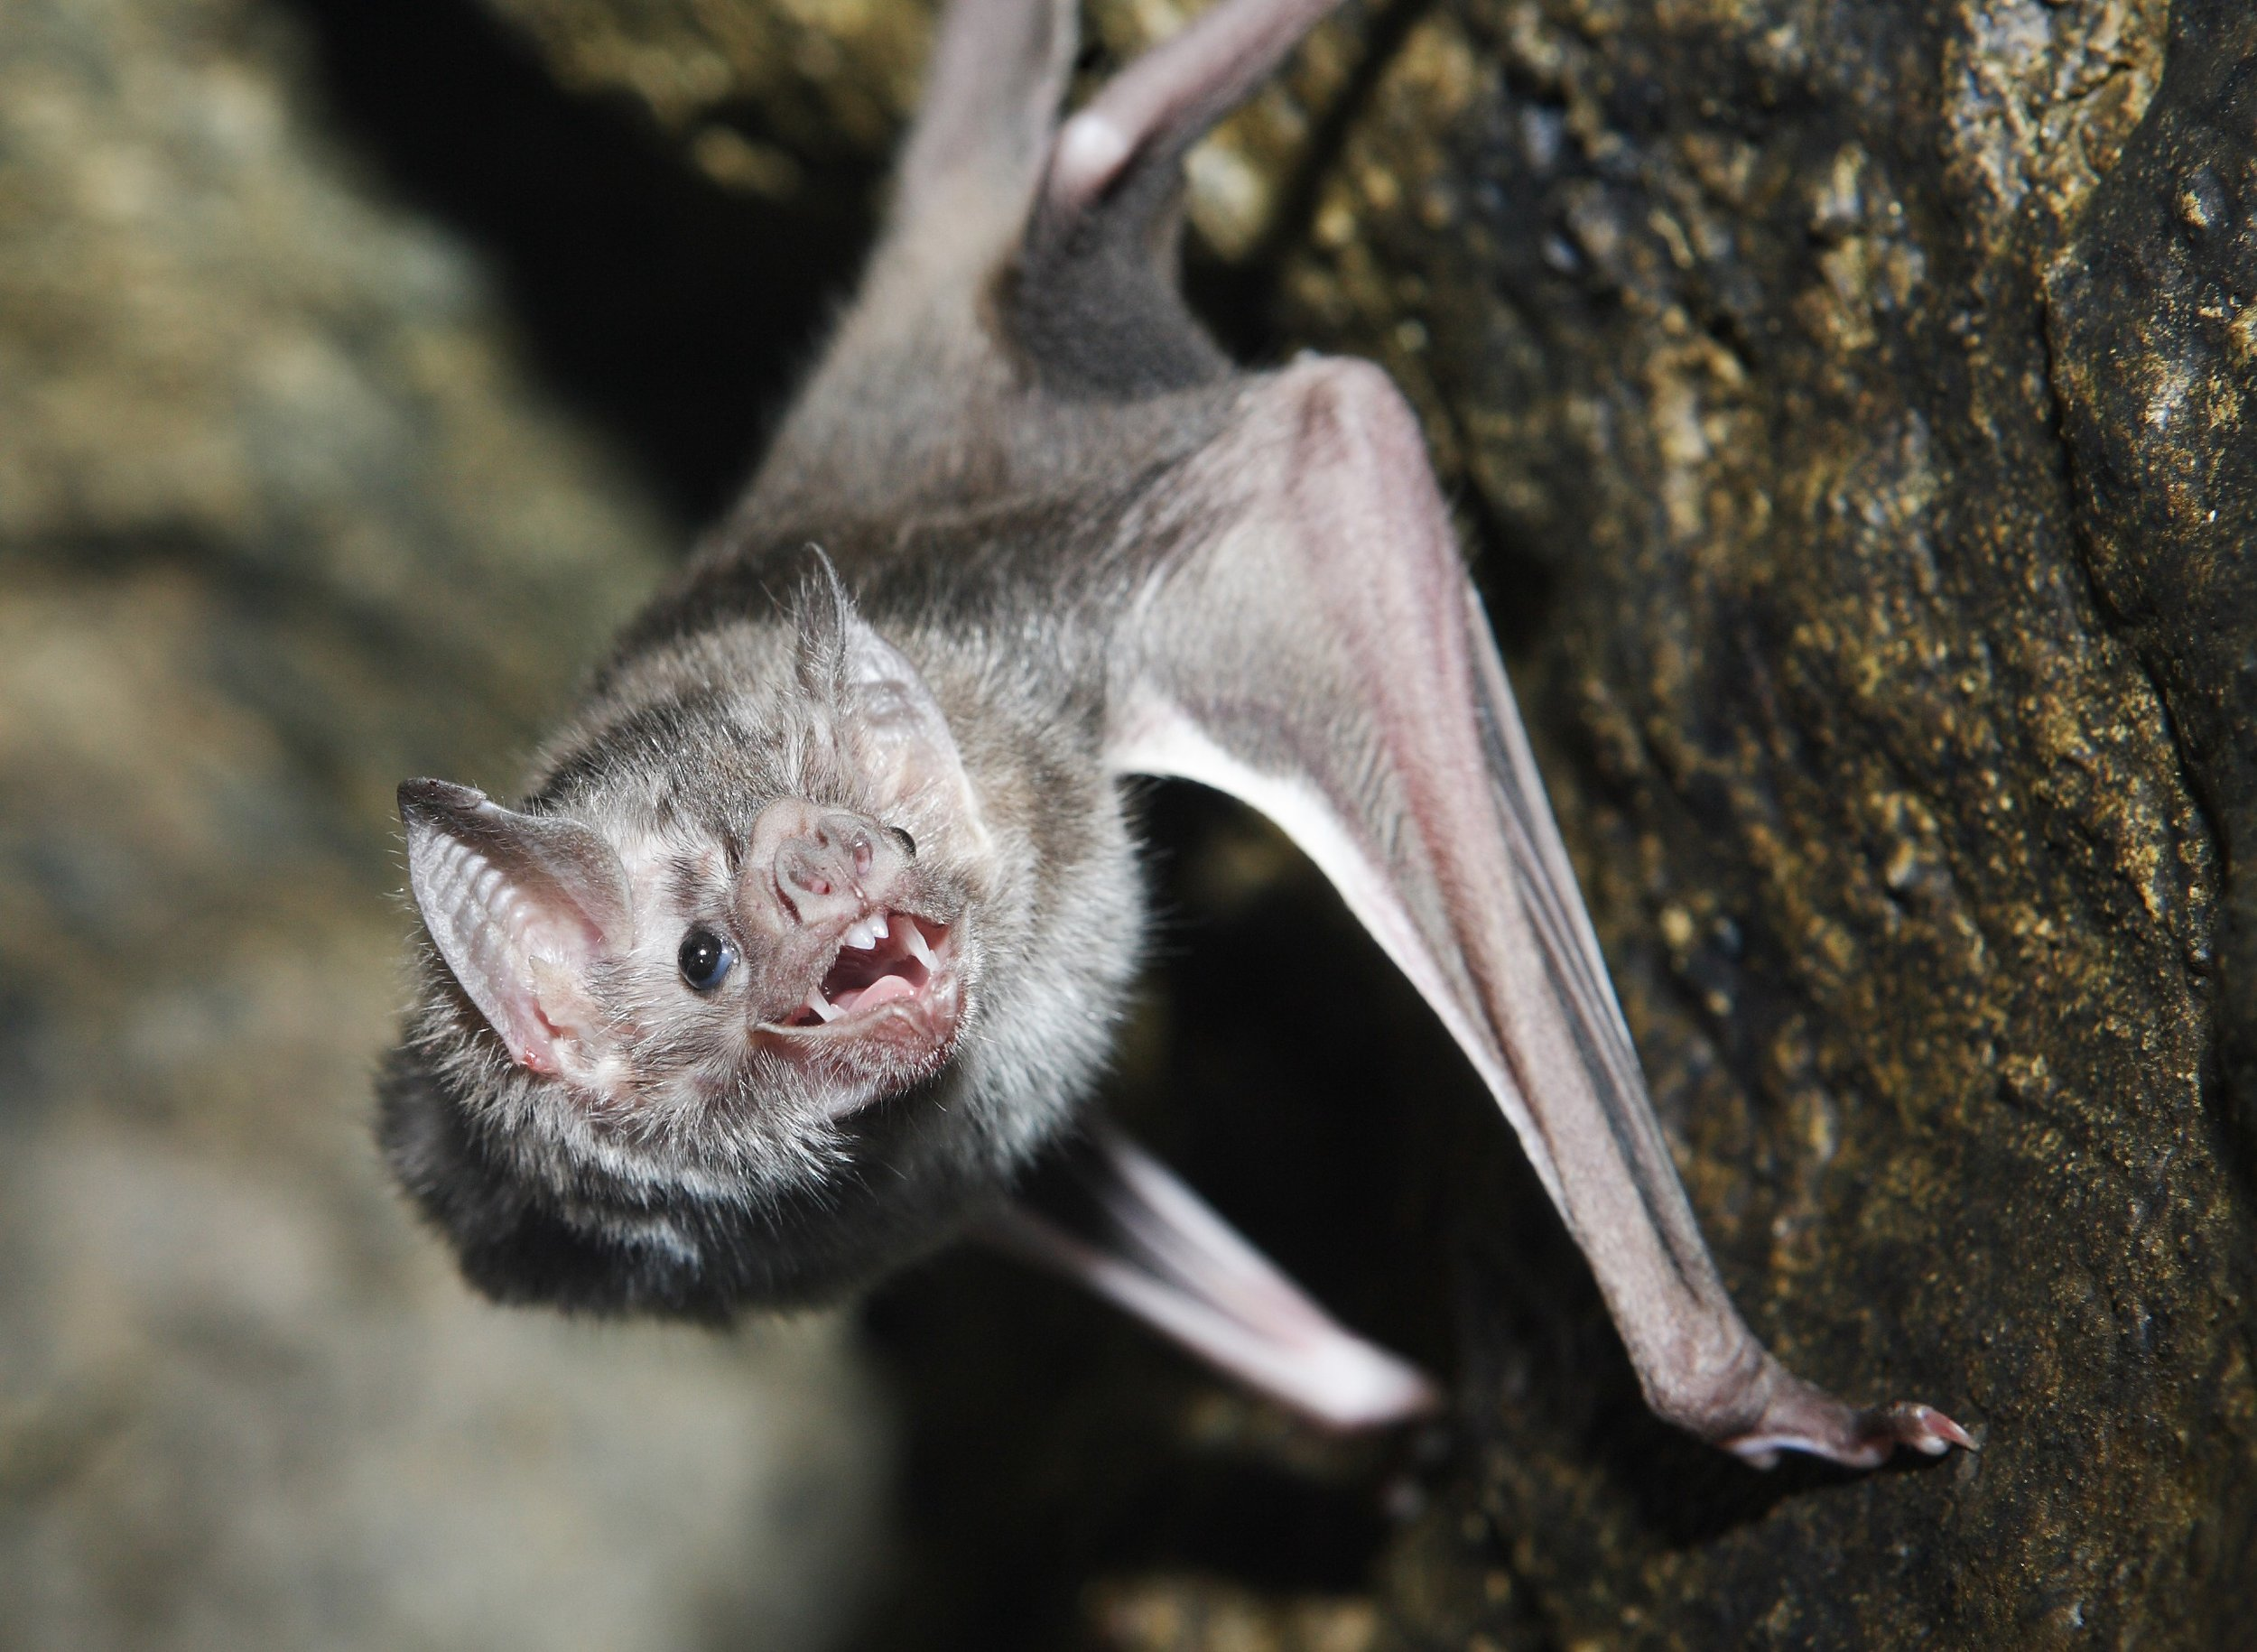 Vampire bats use heat sensors to identify a spot with blood vessels near the surface of the skin to bite. They then create a small incision with their teeth and lap up blood from the wound, just like a kitten!